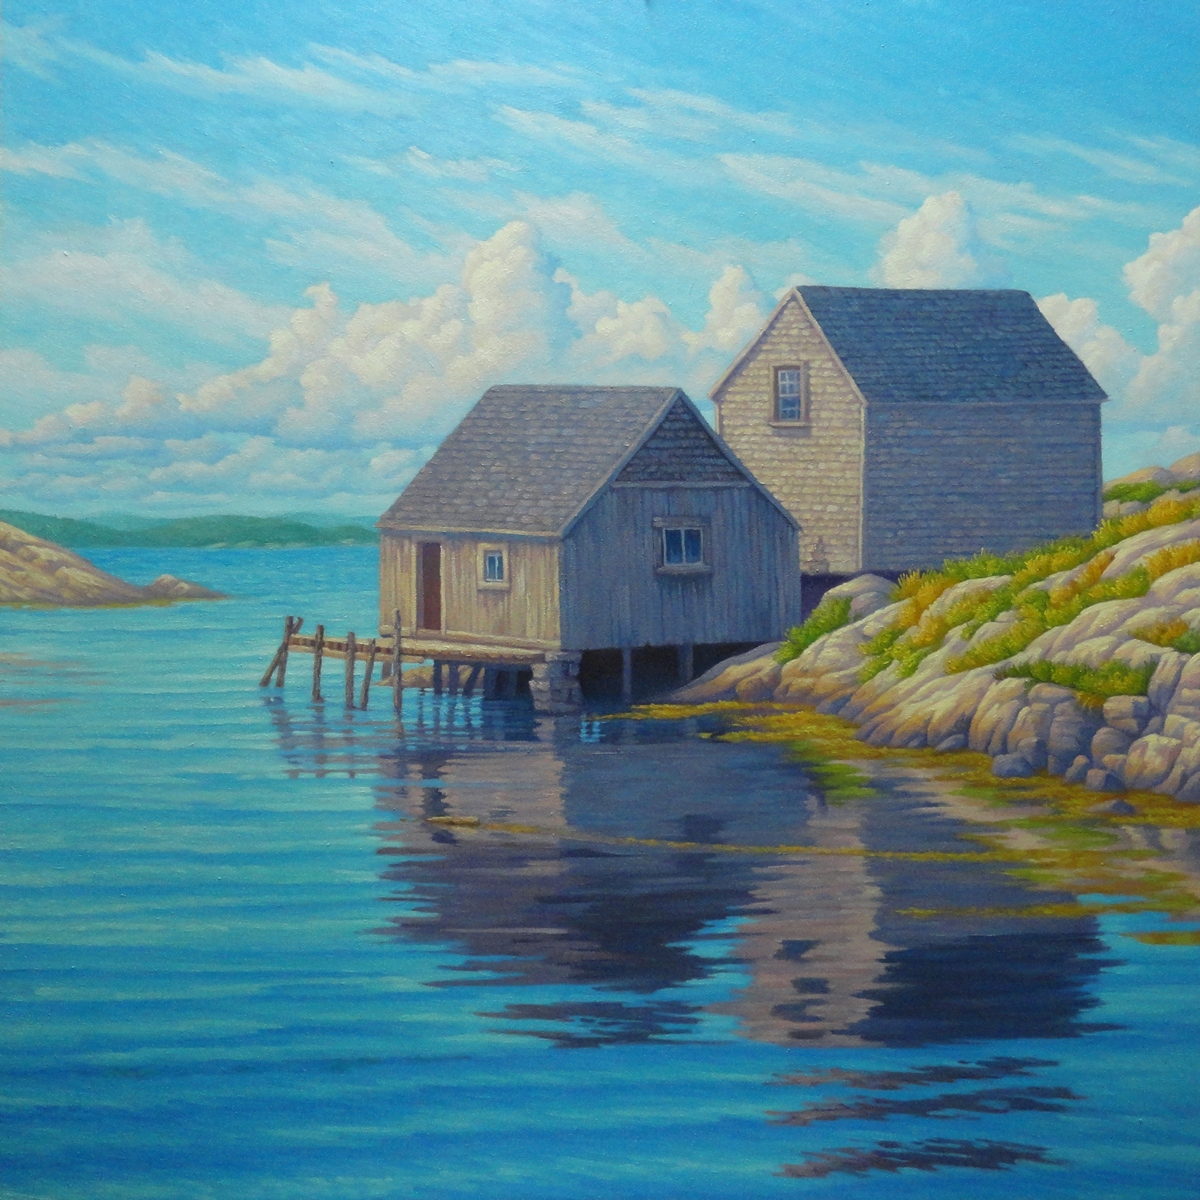 Beach House, Peggy's Cove. 36 x 36 inches, oil/canvas